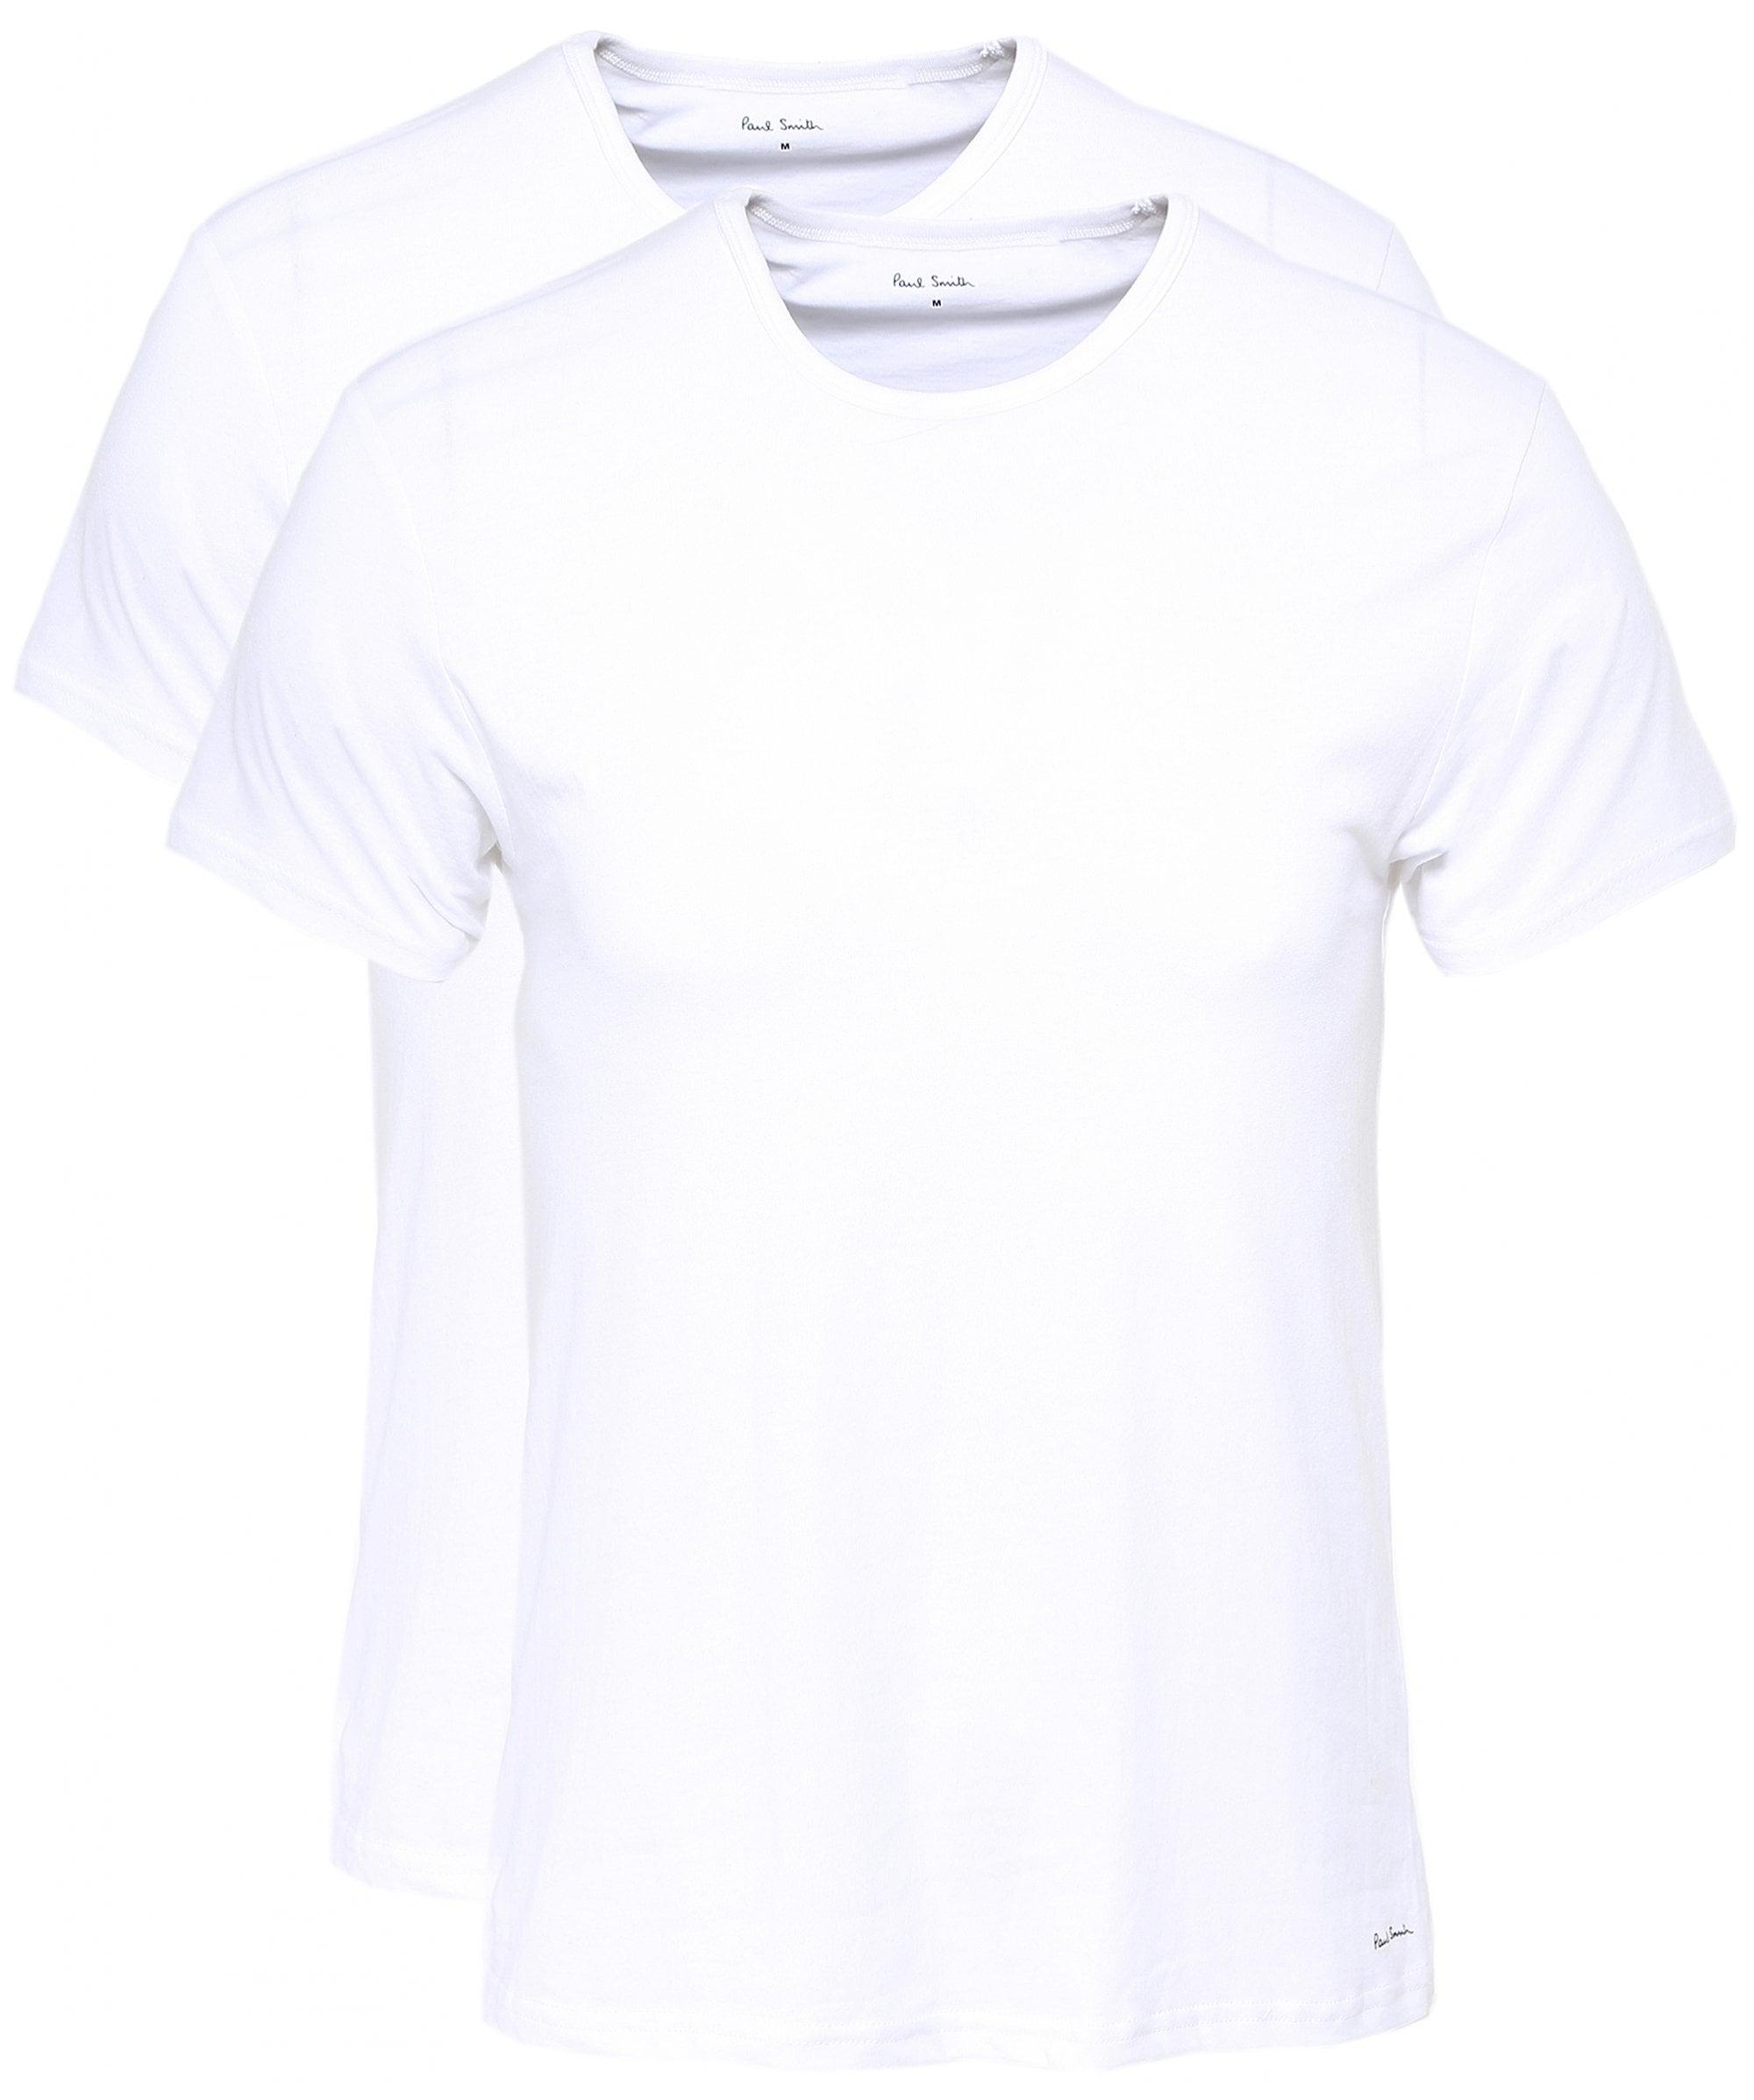 80edb6dd ... White Two Pack Of T-shirts for Men - Lyst. View fullscreen